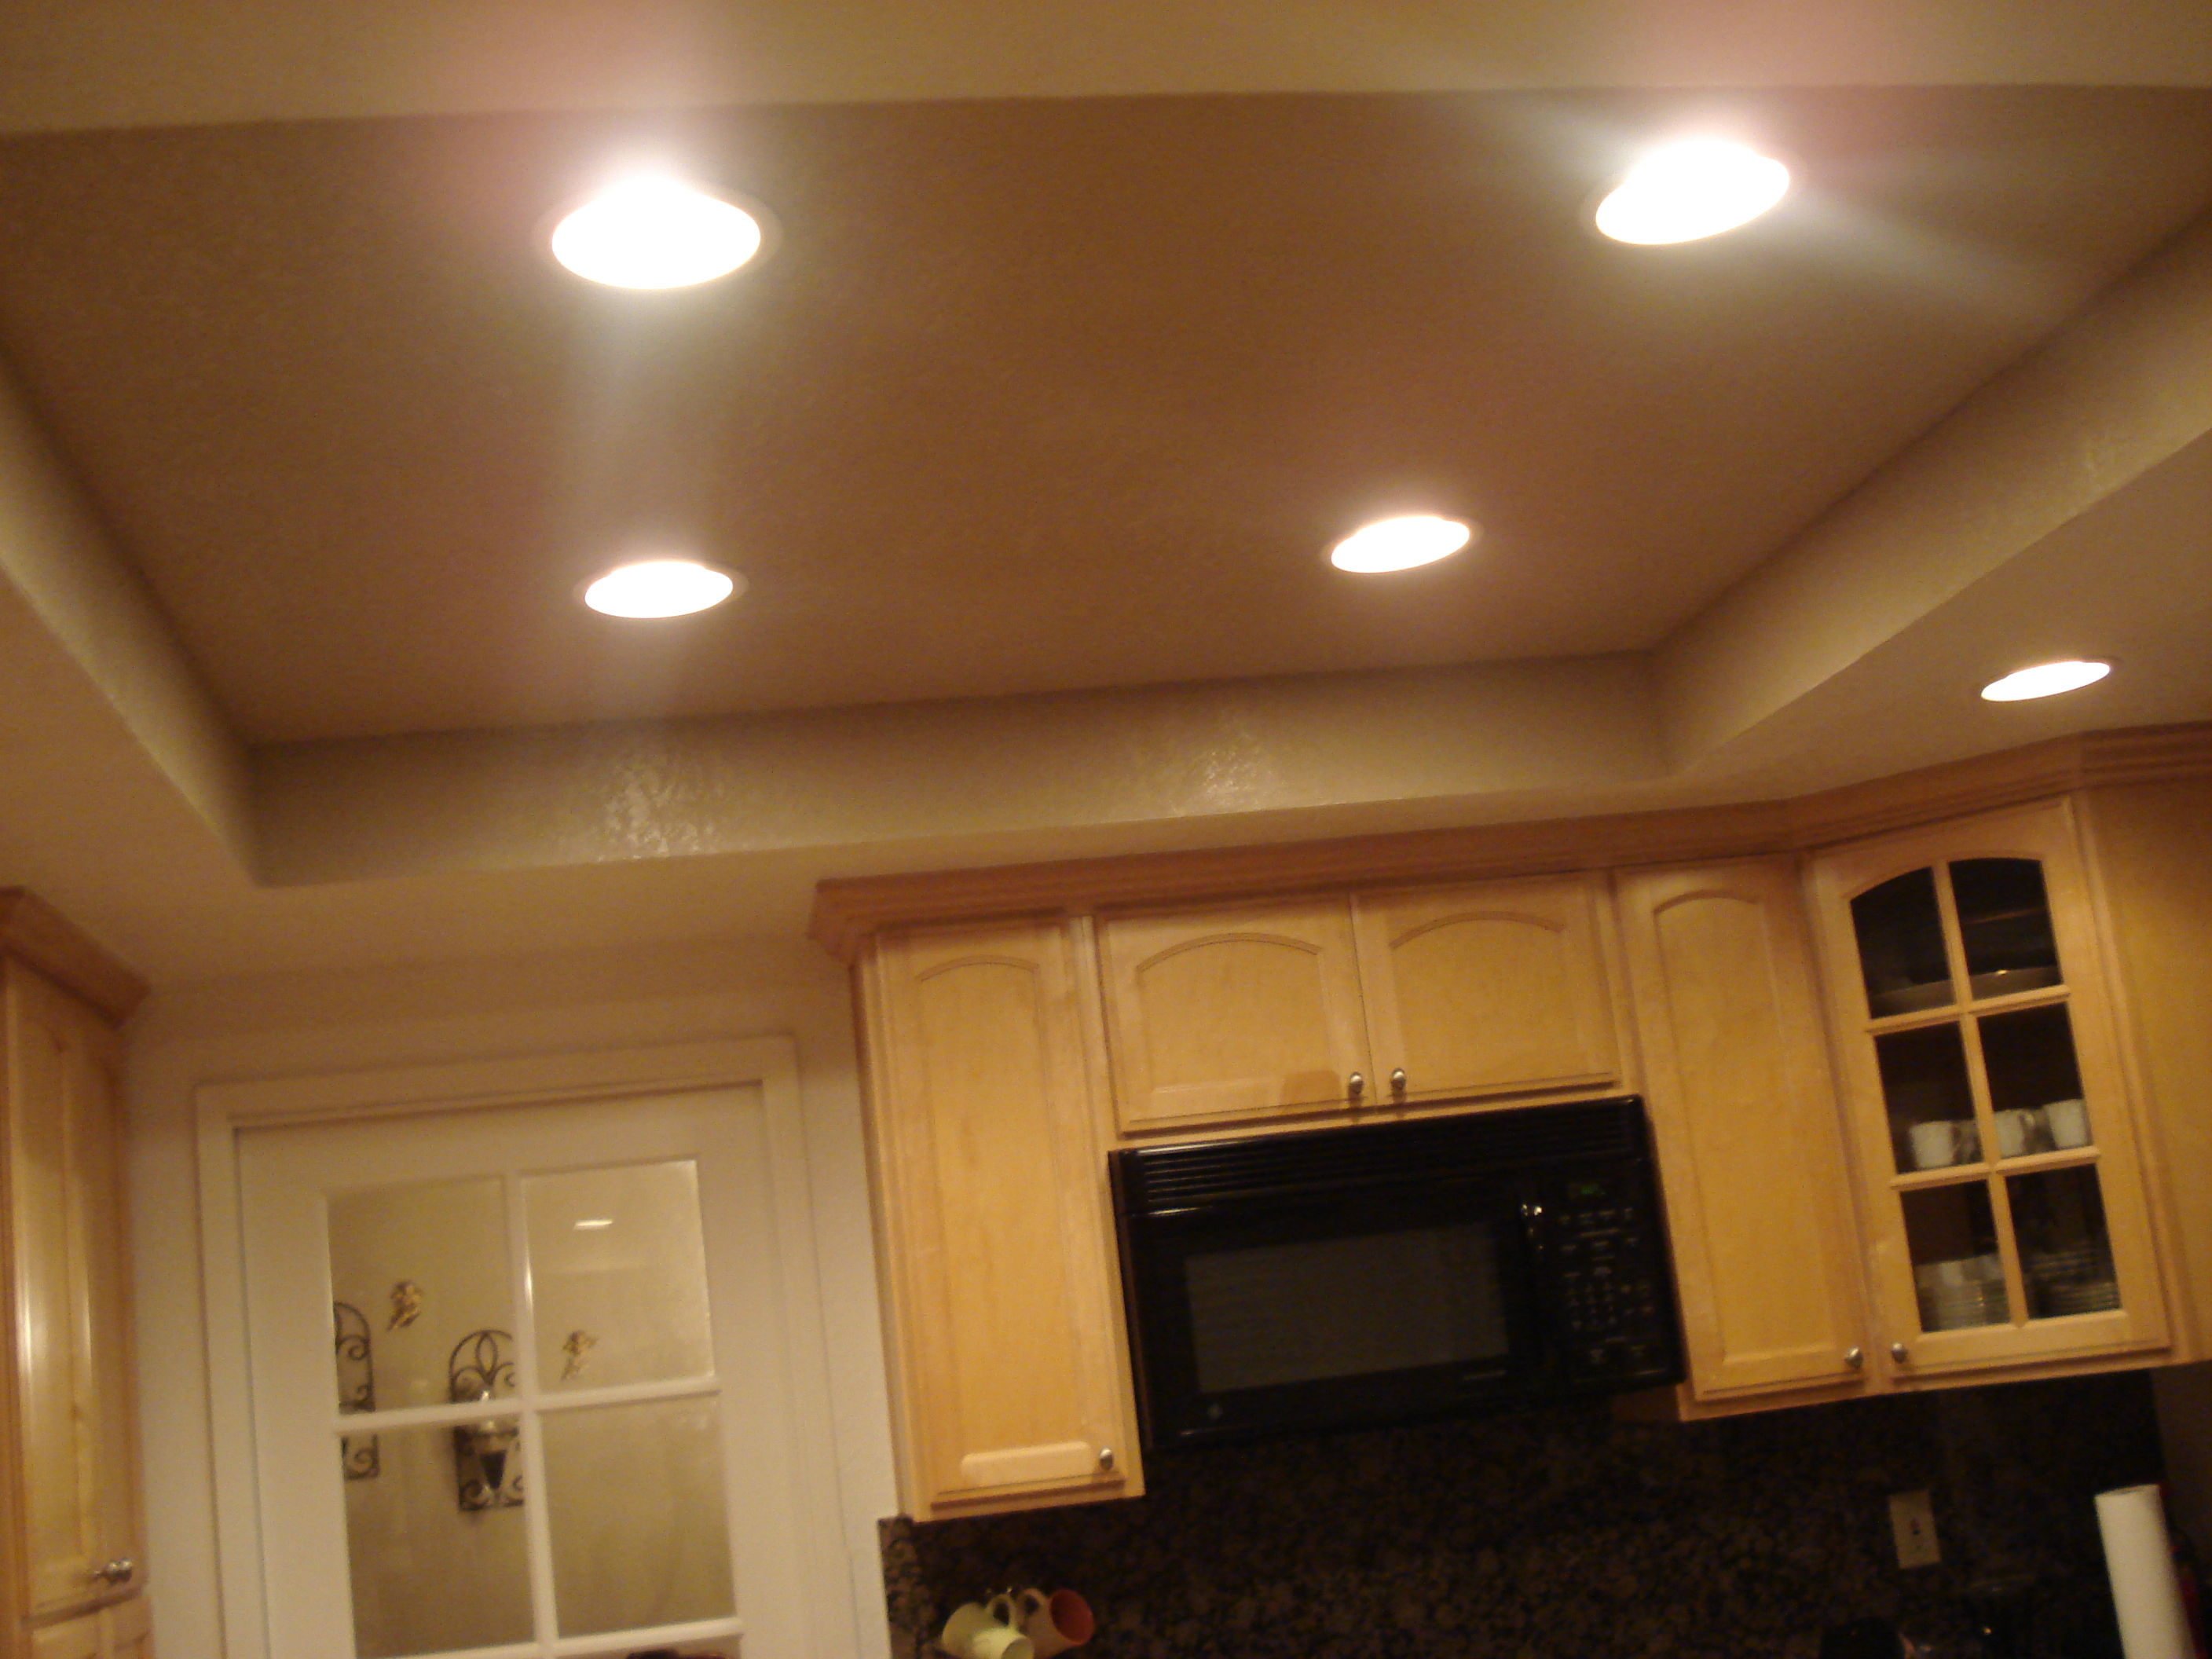 ... interior recessed lighting design recessed electric bedroom lighting kitchen s decoration ideas utilitech recessed lighting recessed & ? kitchen lighting : Surprising Can Lights In Kitchen Where Place ... azcodes.com